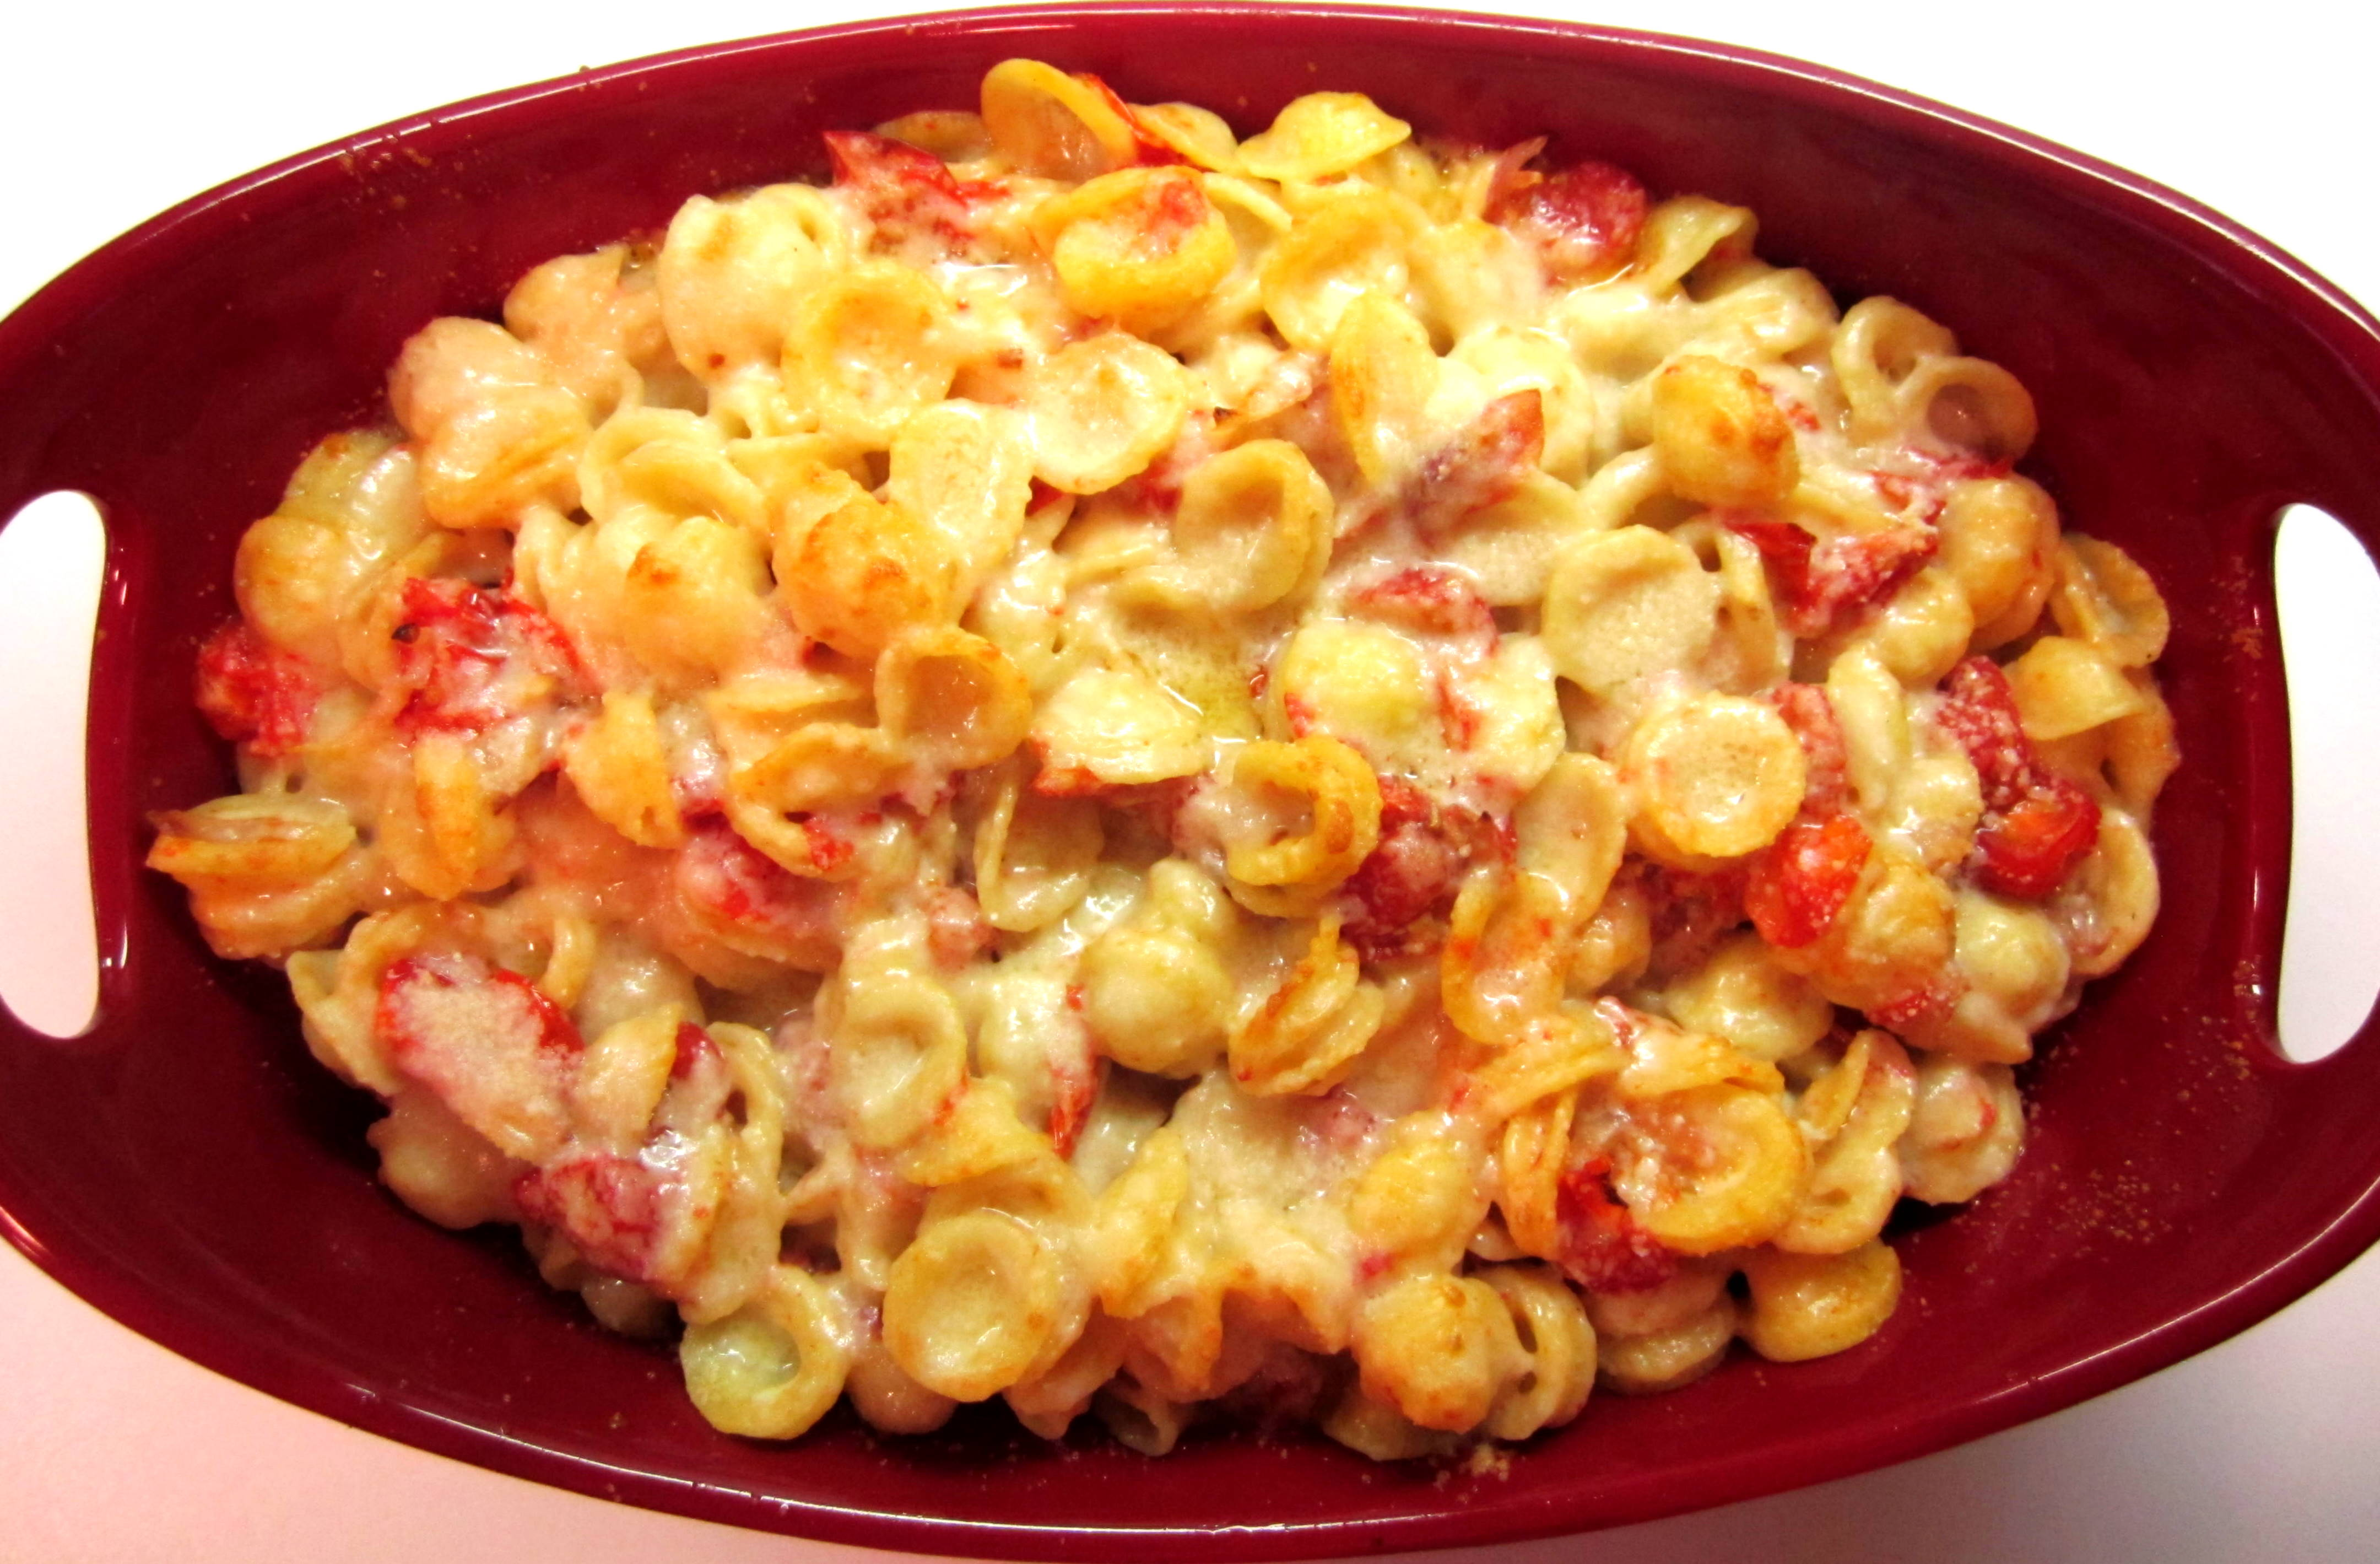 Baked Pasta With Tomatoes And Parmesan Recipes — Dishmaps